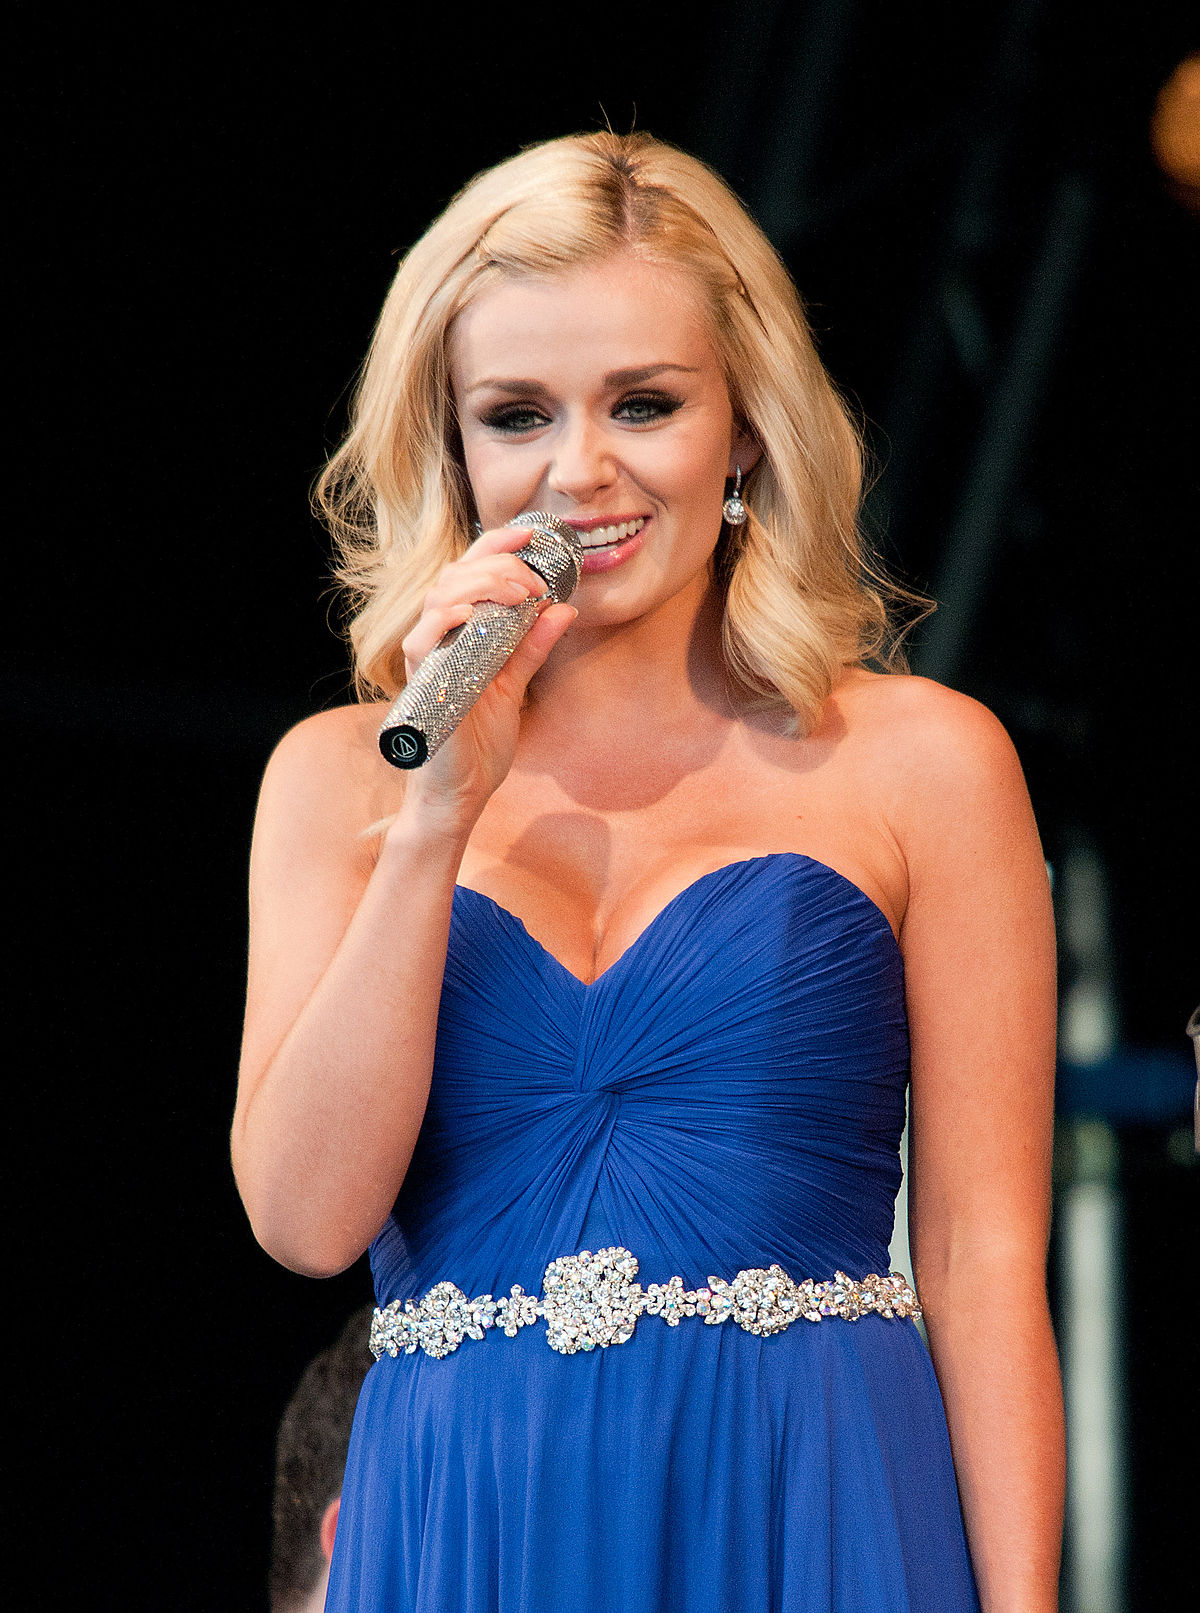 Where Did You Sleep Last Night: Katherine Jenkins Discography